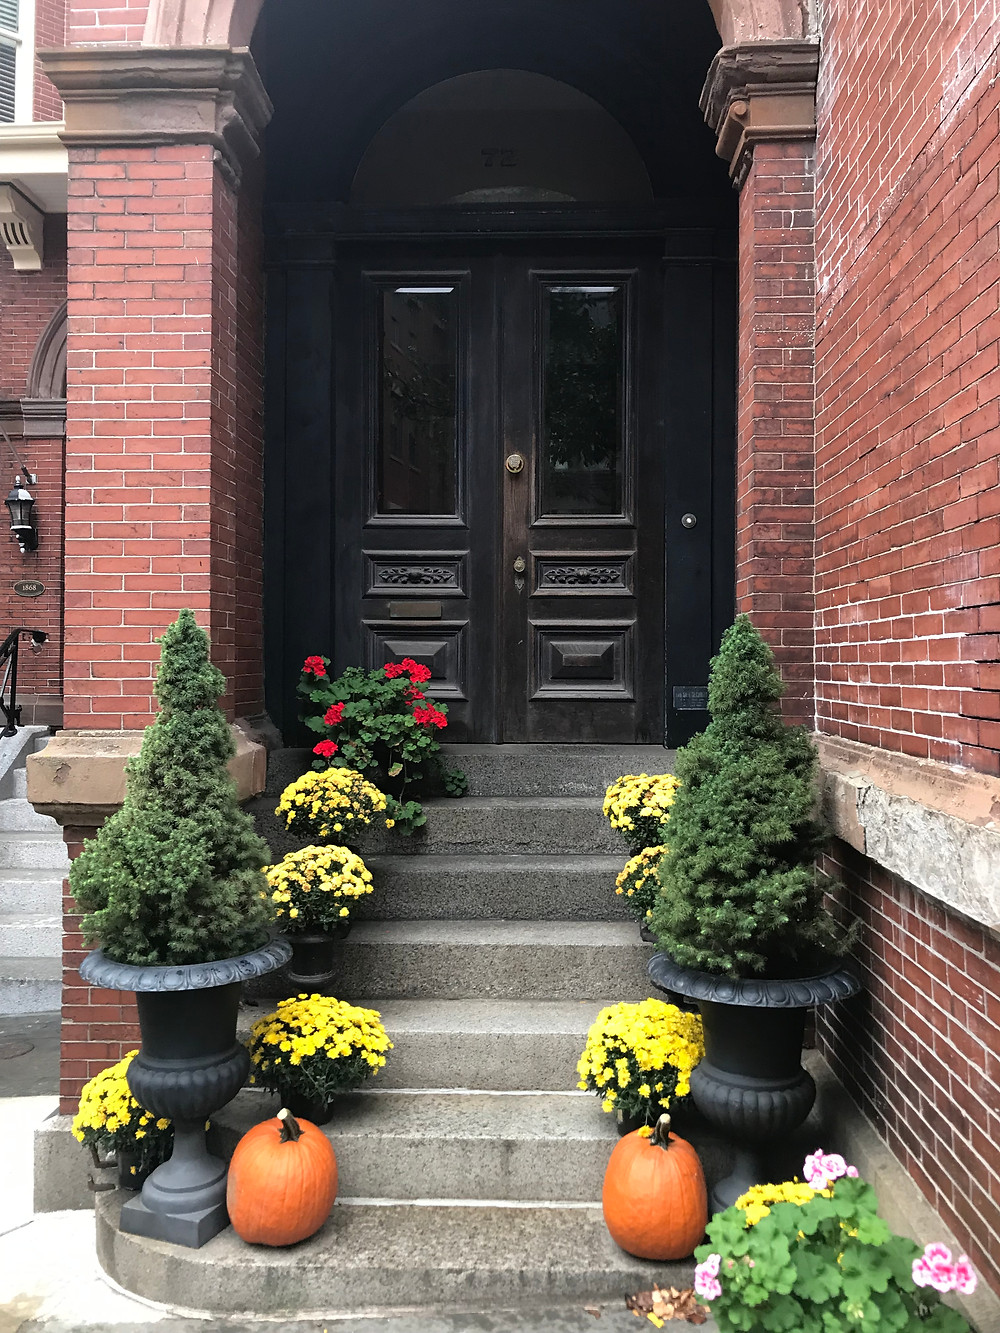 A red bricked house with a black door and autumnal flowers and pumpkins on the step.